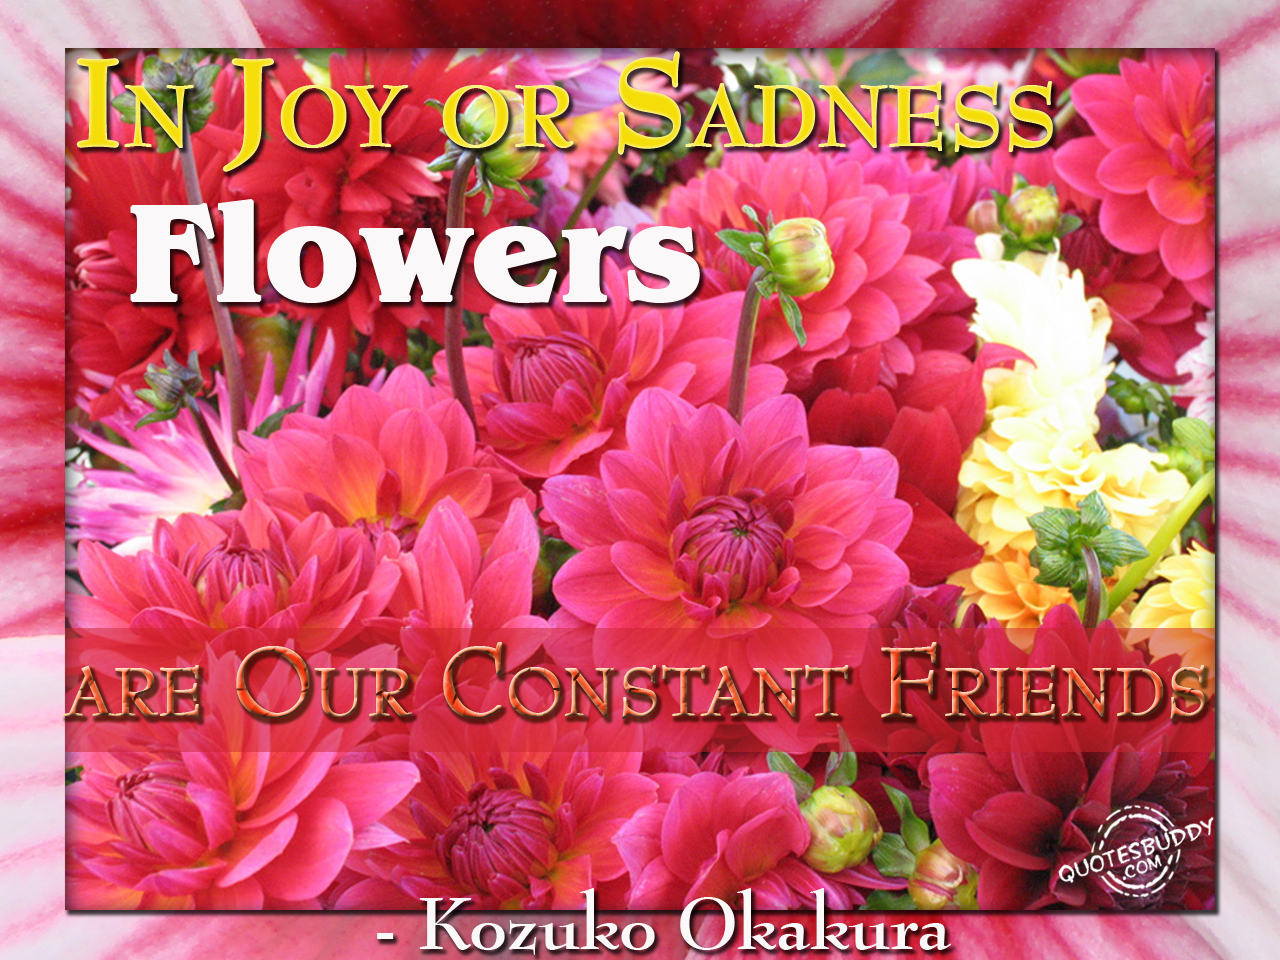 Flowers Quotes Pictures And Flowers Quotes Images With Message 12